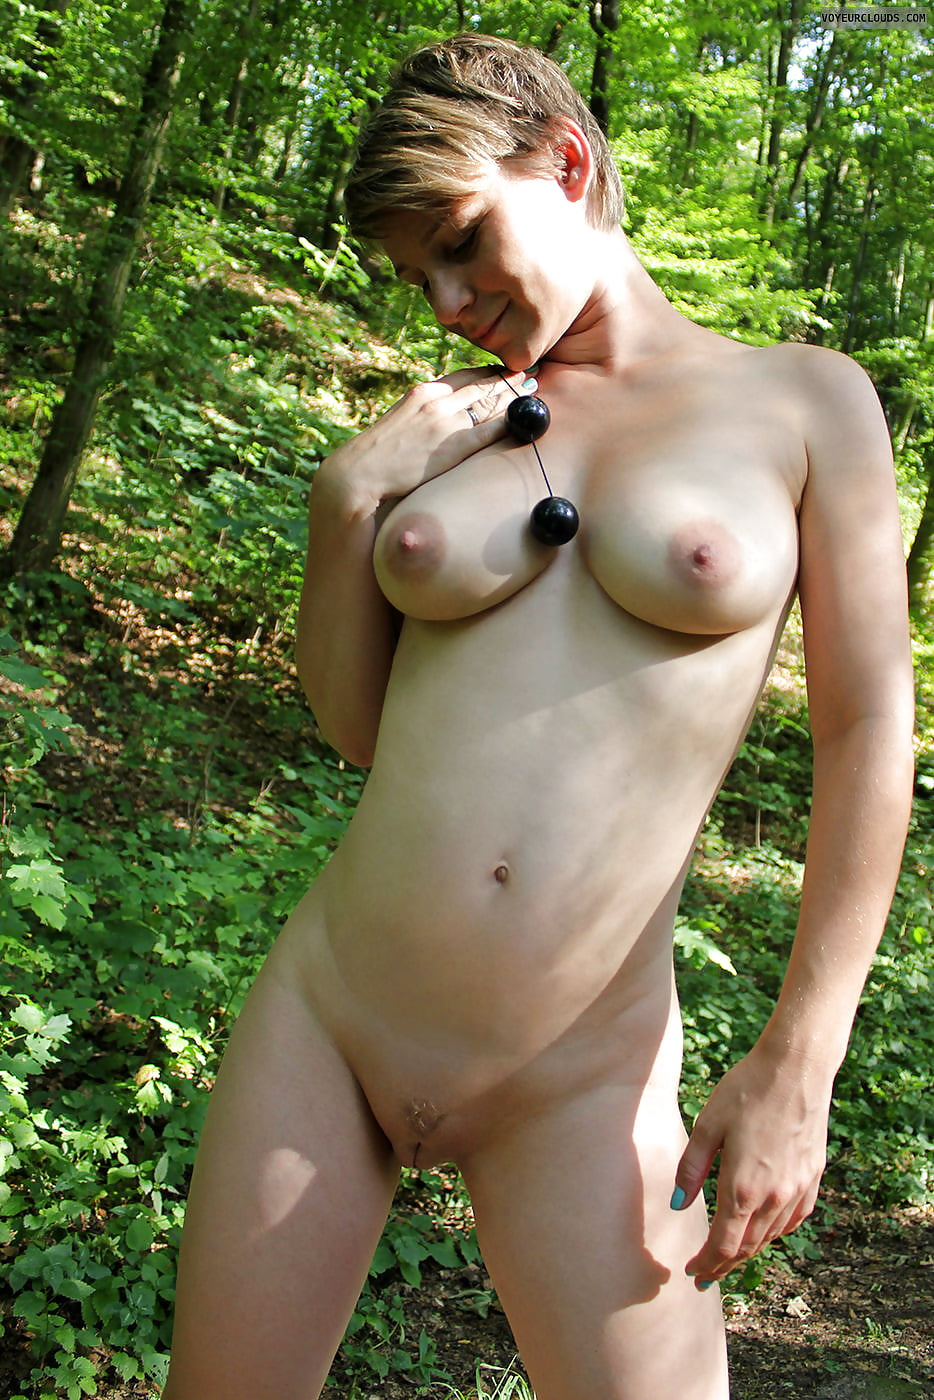 Nude In Public Everywhere - 55 Pics - Xhamstercom-3188